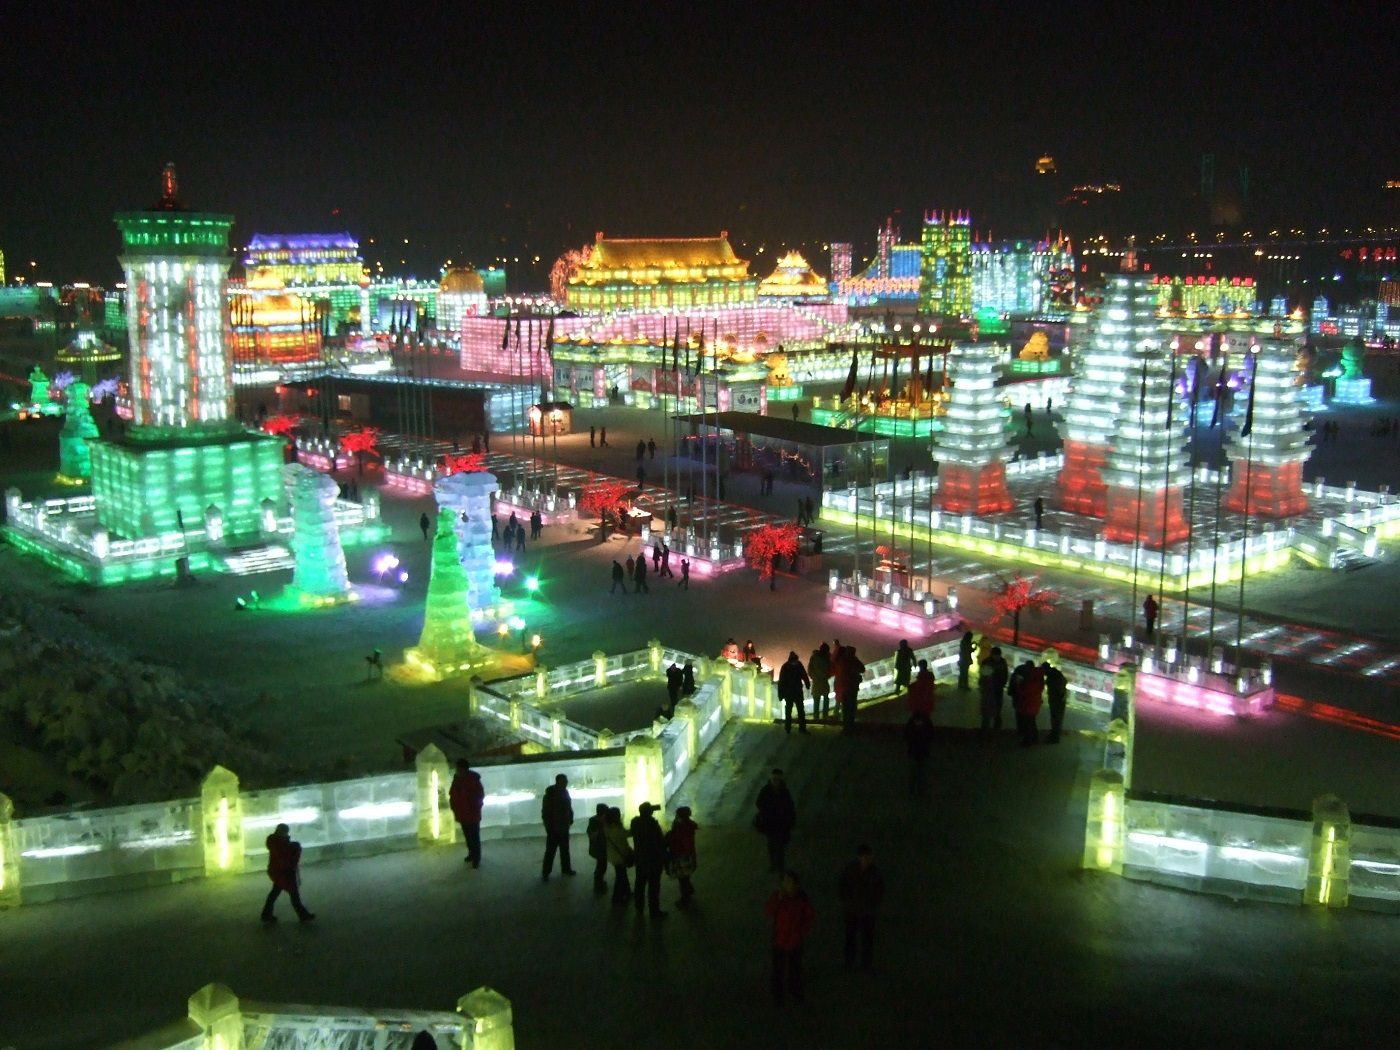 Cold and Beautiful - The Ce and Snow Festival in Harbin.   #china #travel #festivals #holidays #adventure #winter